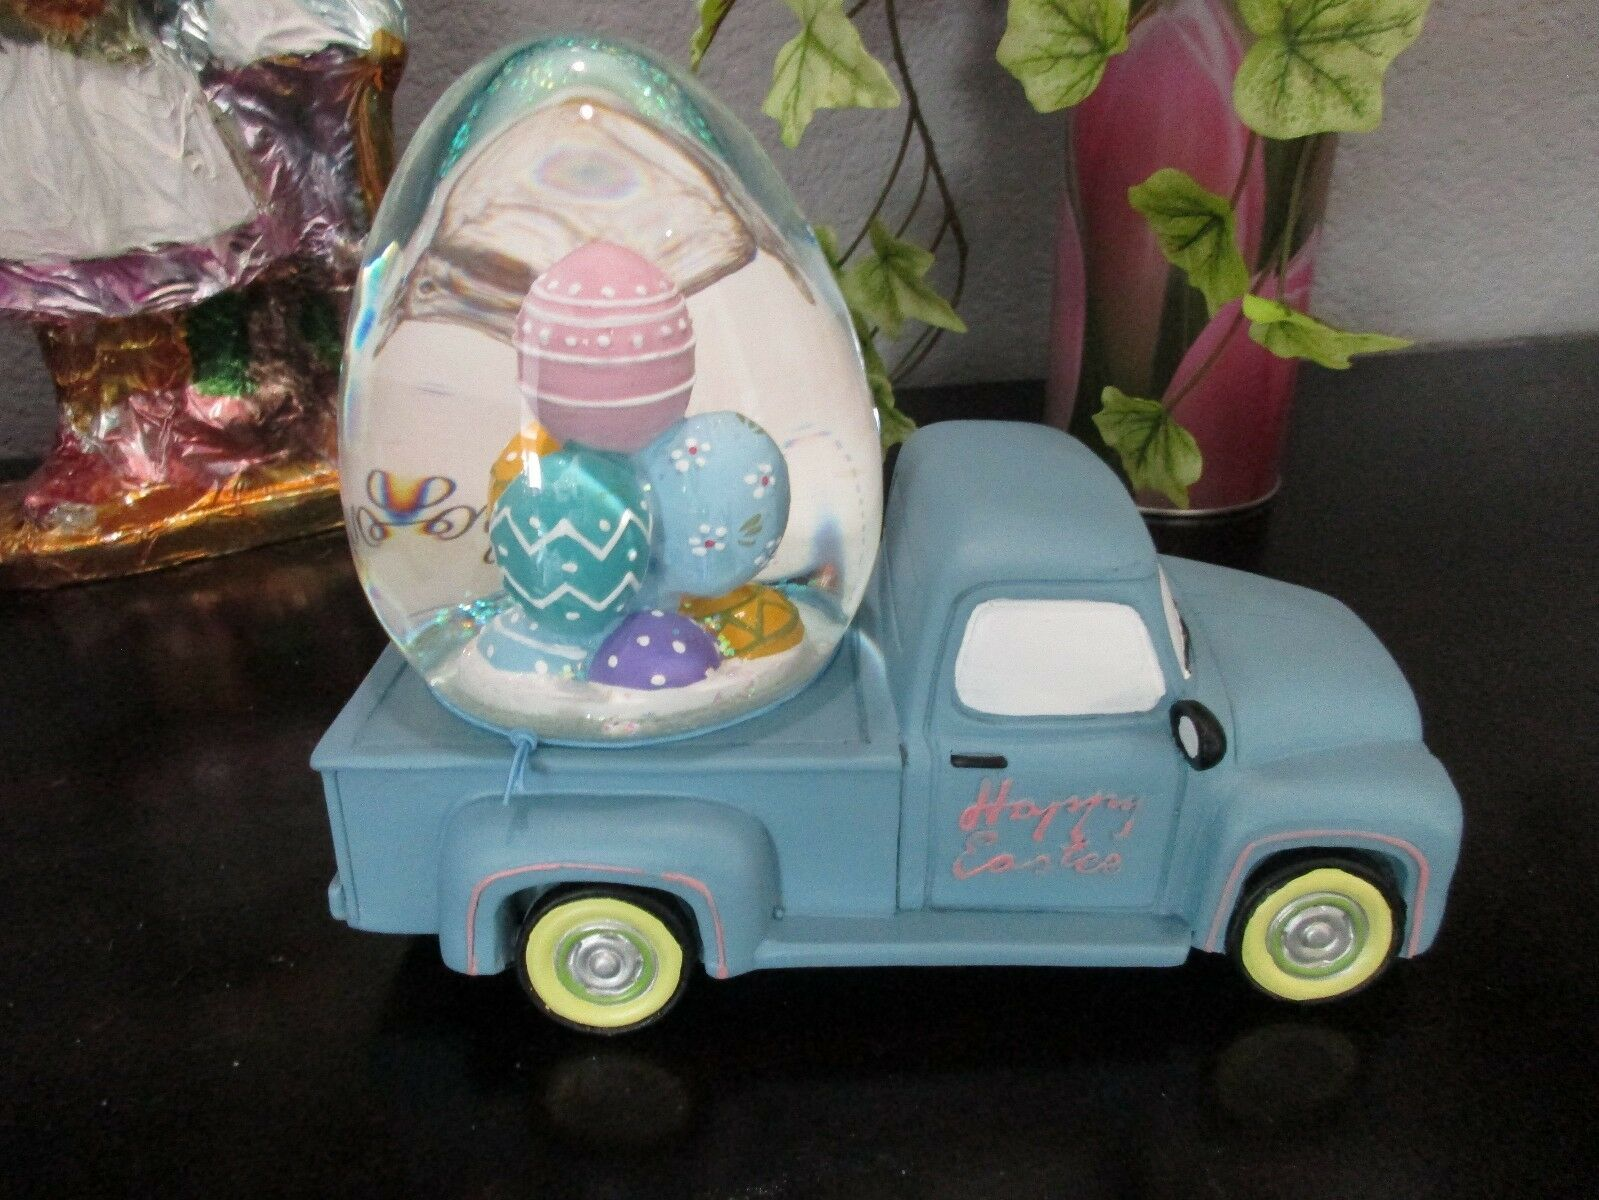 Primary image for HIP HOP EASTER  VINTAGE TRUCK WITH EGGS MUSICAL WATER GLOBE TABLETOP DECOR